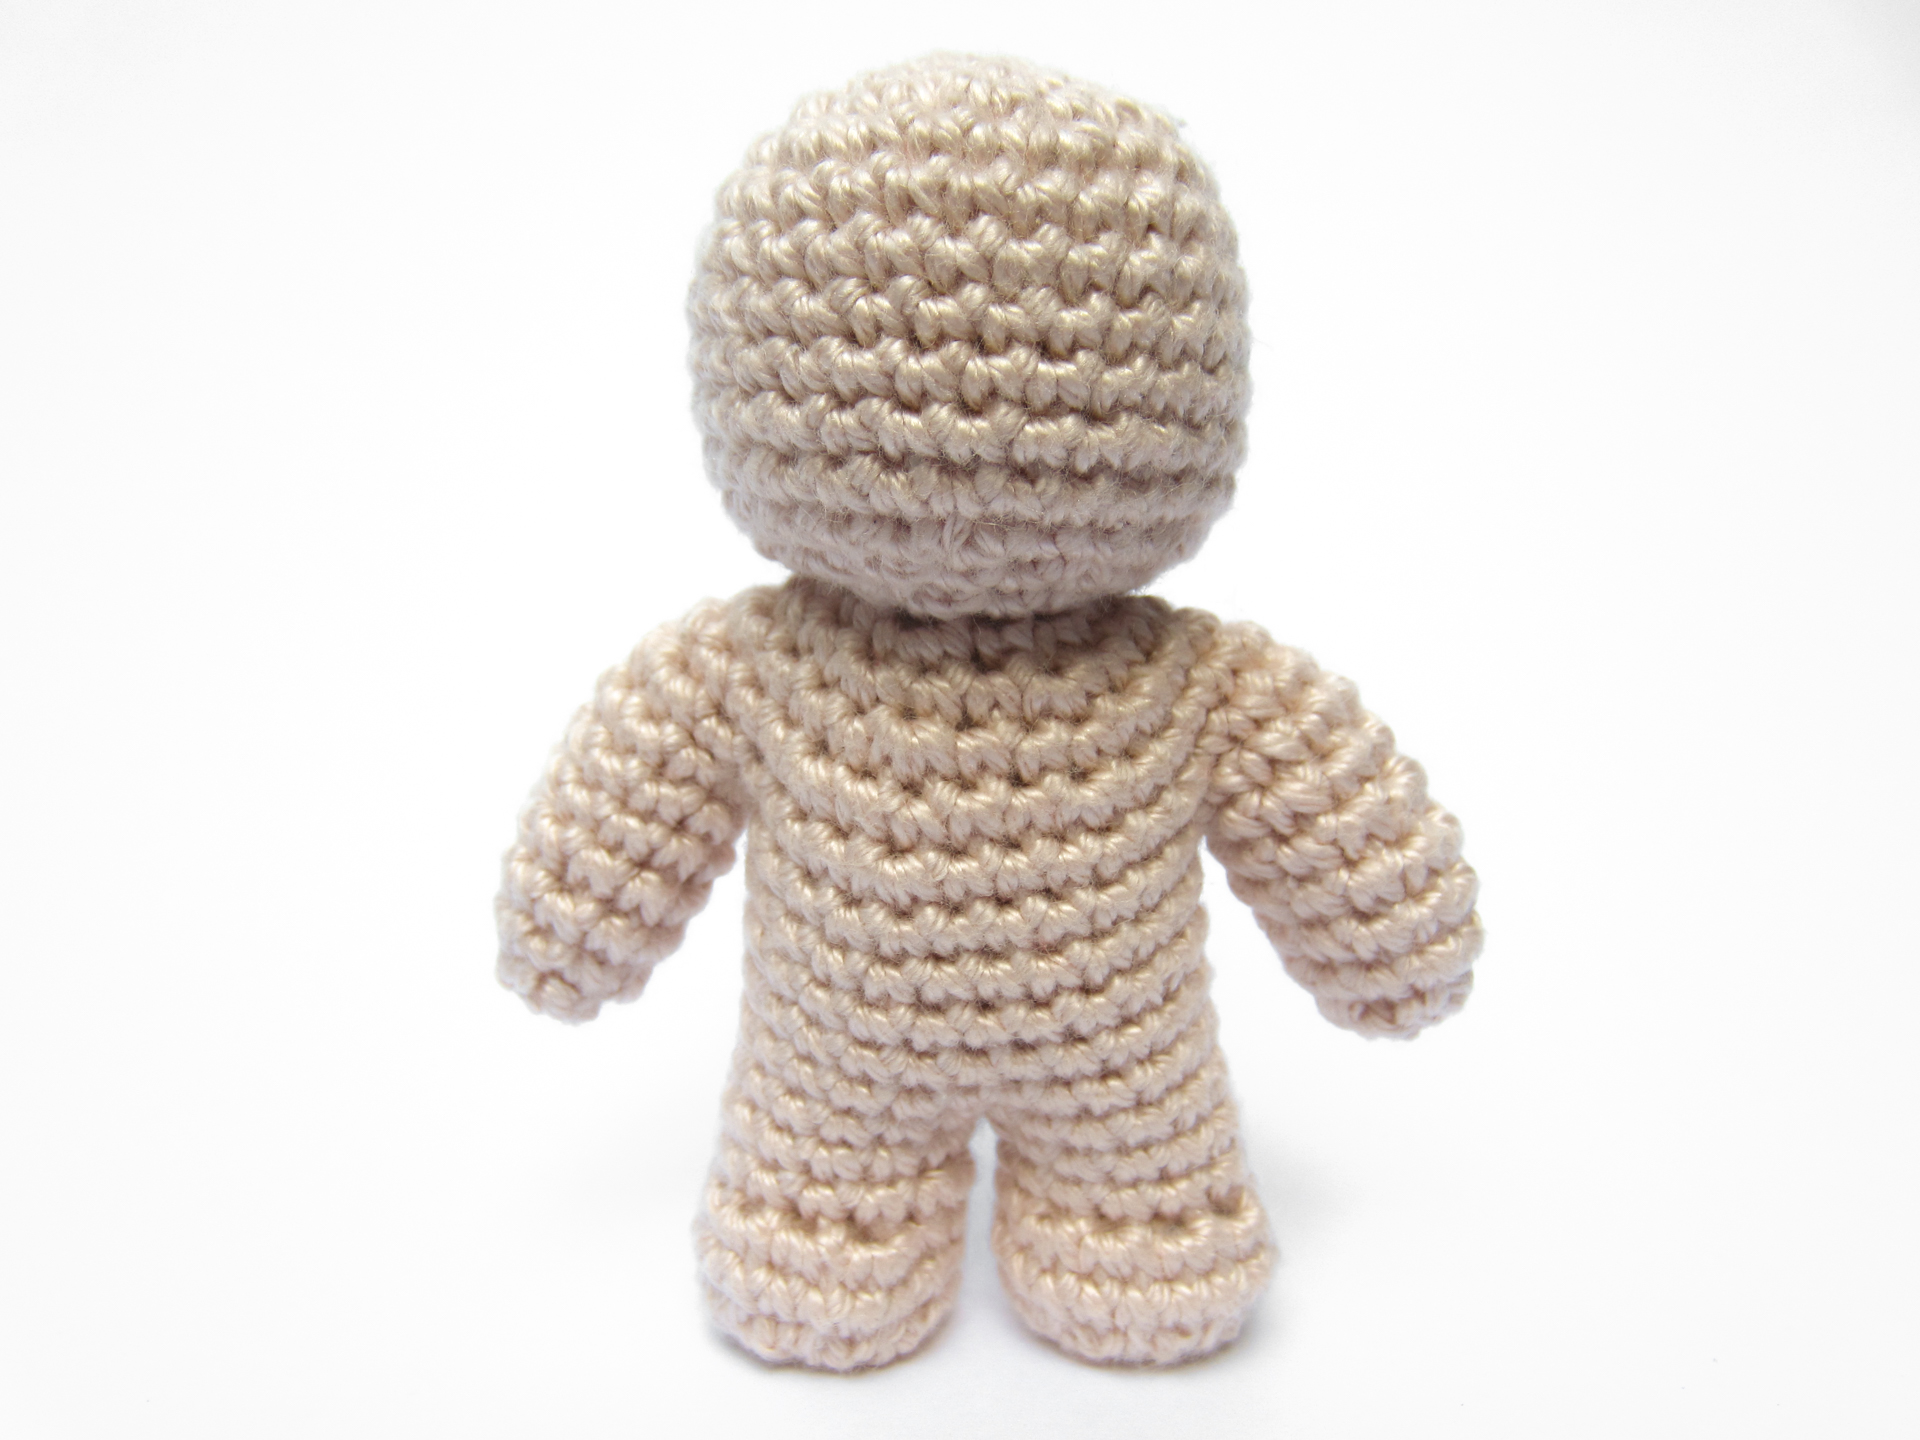 Cute And Easy To Crochet Doll Amigurumi - Pattern Center | 1440x1920